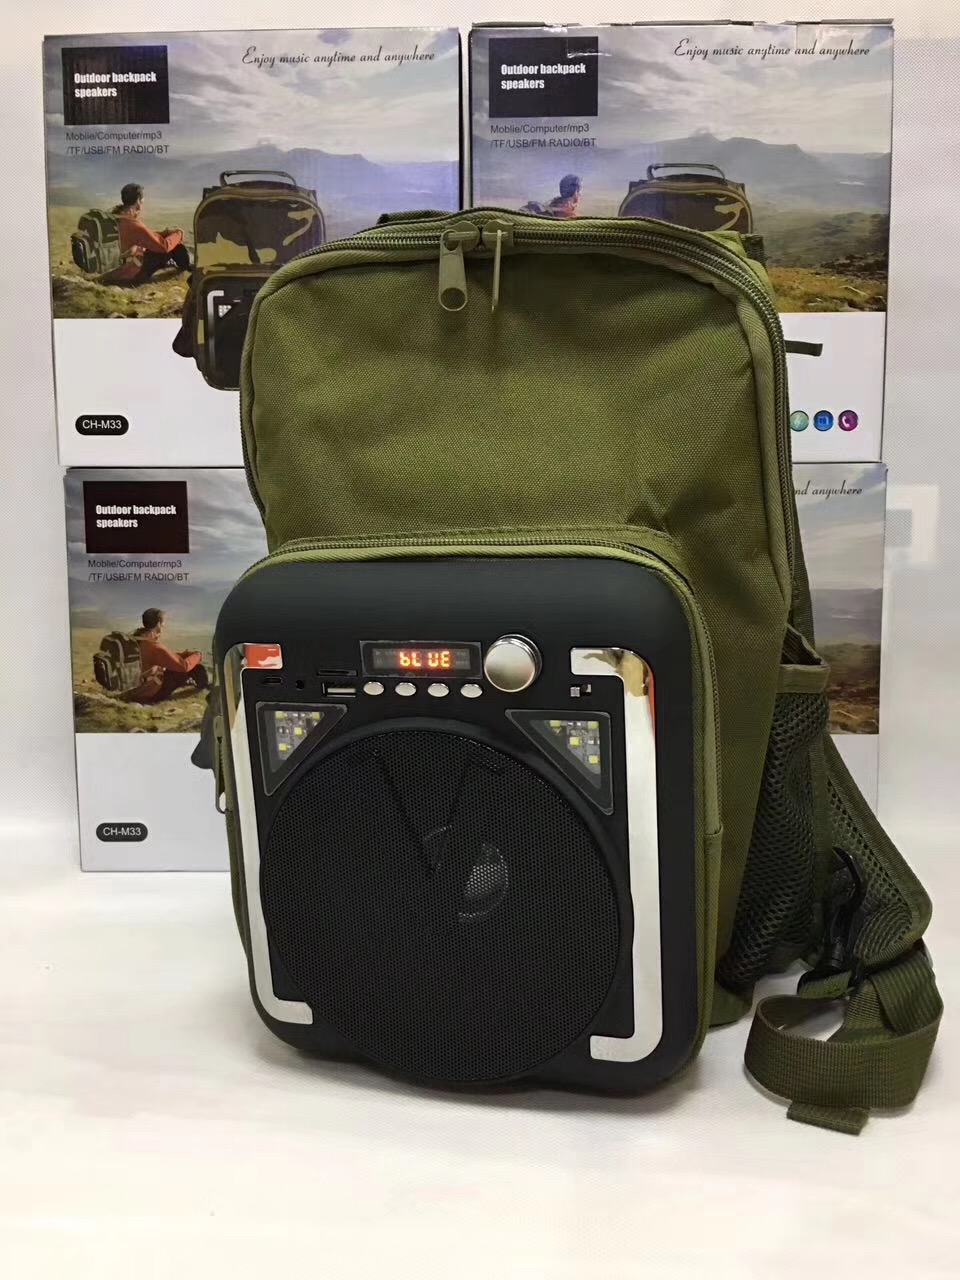 NEW TMC MILITARY CHROME CAMOUFLAGE USB STEREO SPEAKERS FOR COMPUTER MP3 ETC